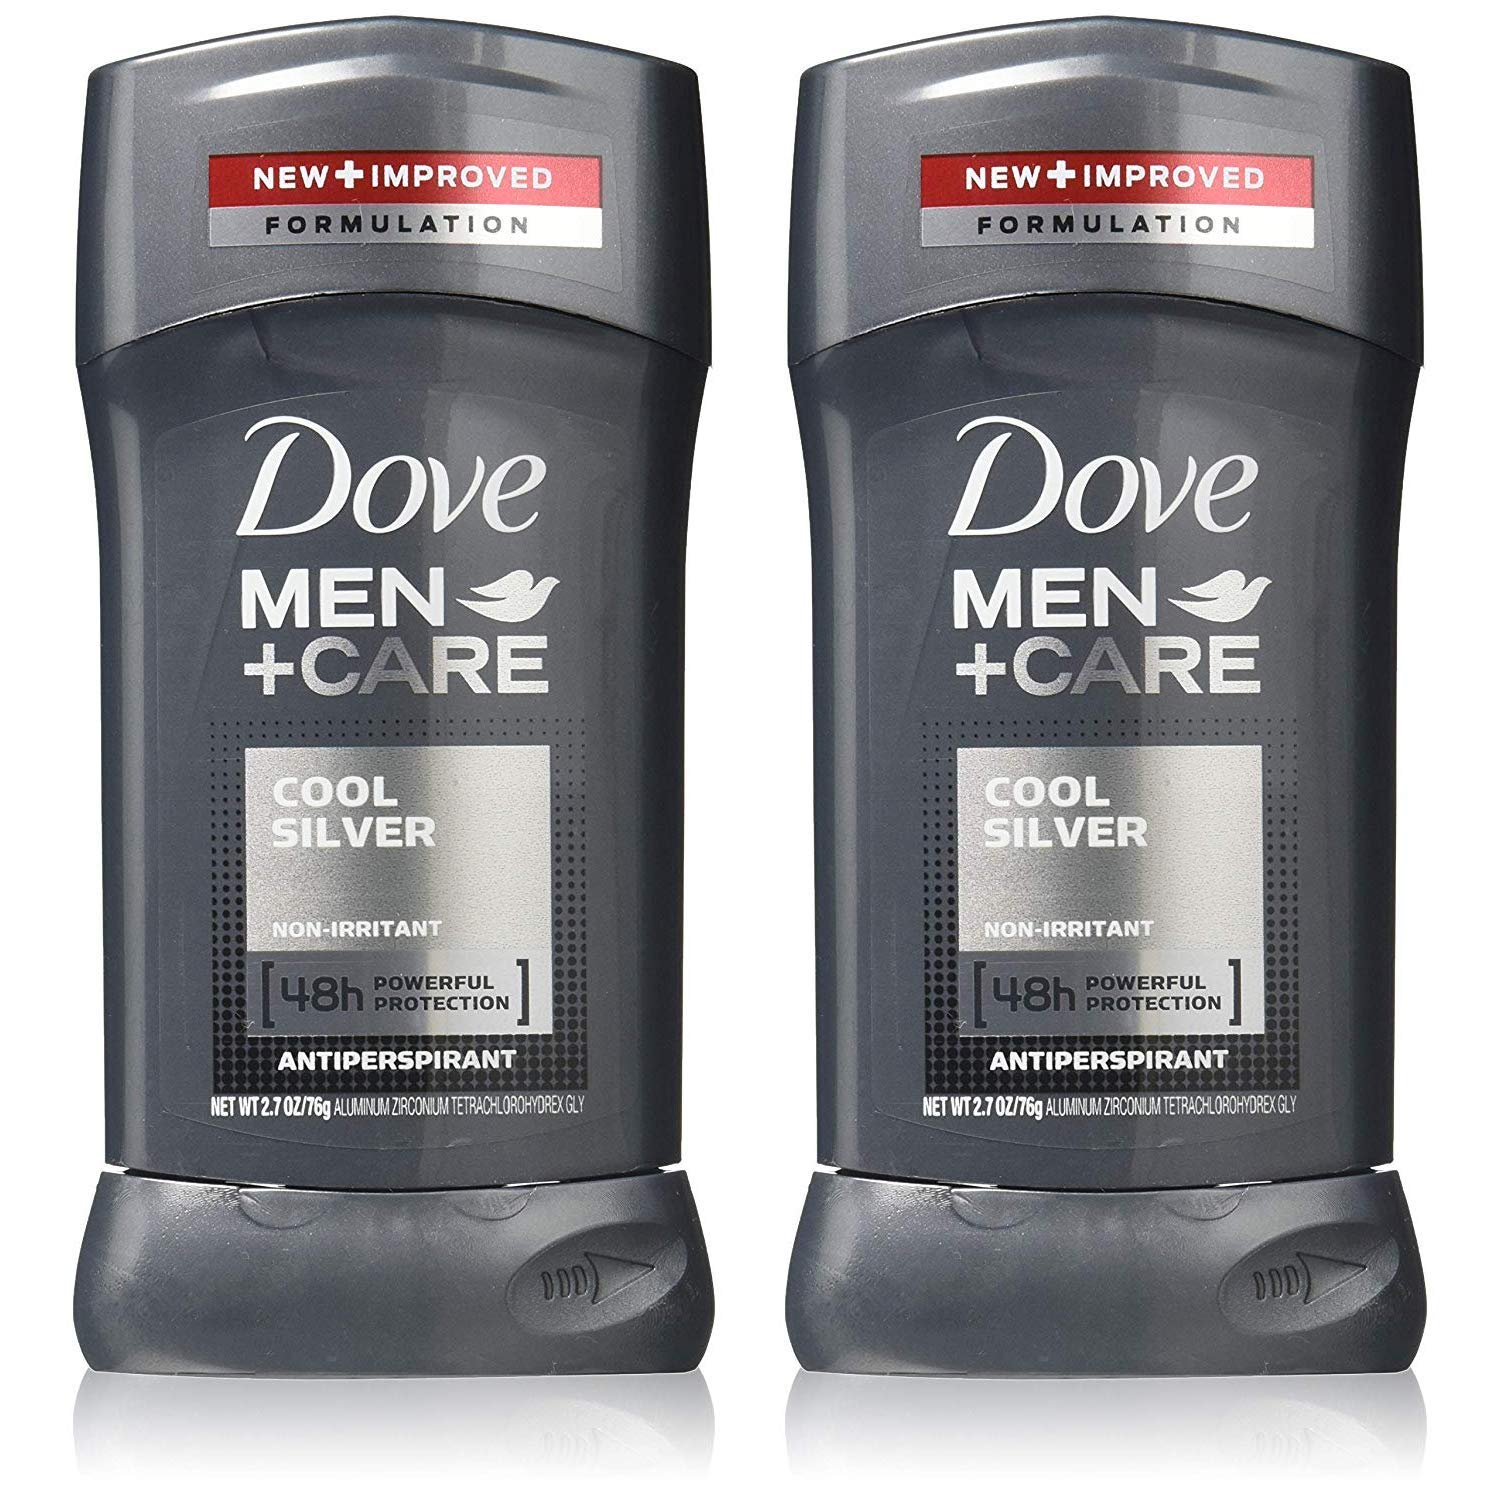 Dove Men + Care Antiperspirant, Cool Silver 2.70 oz (Pack of 2)